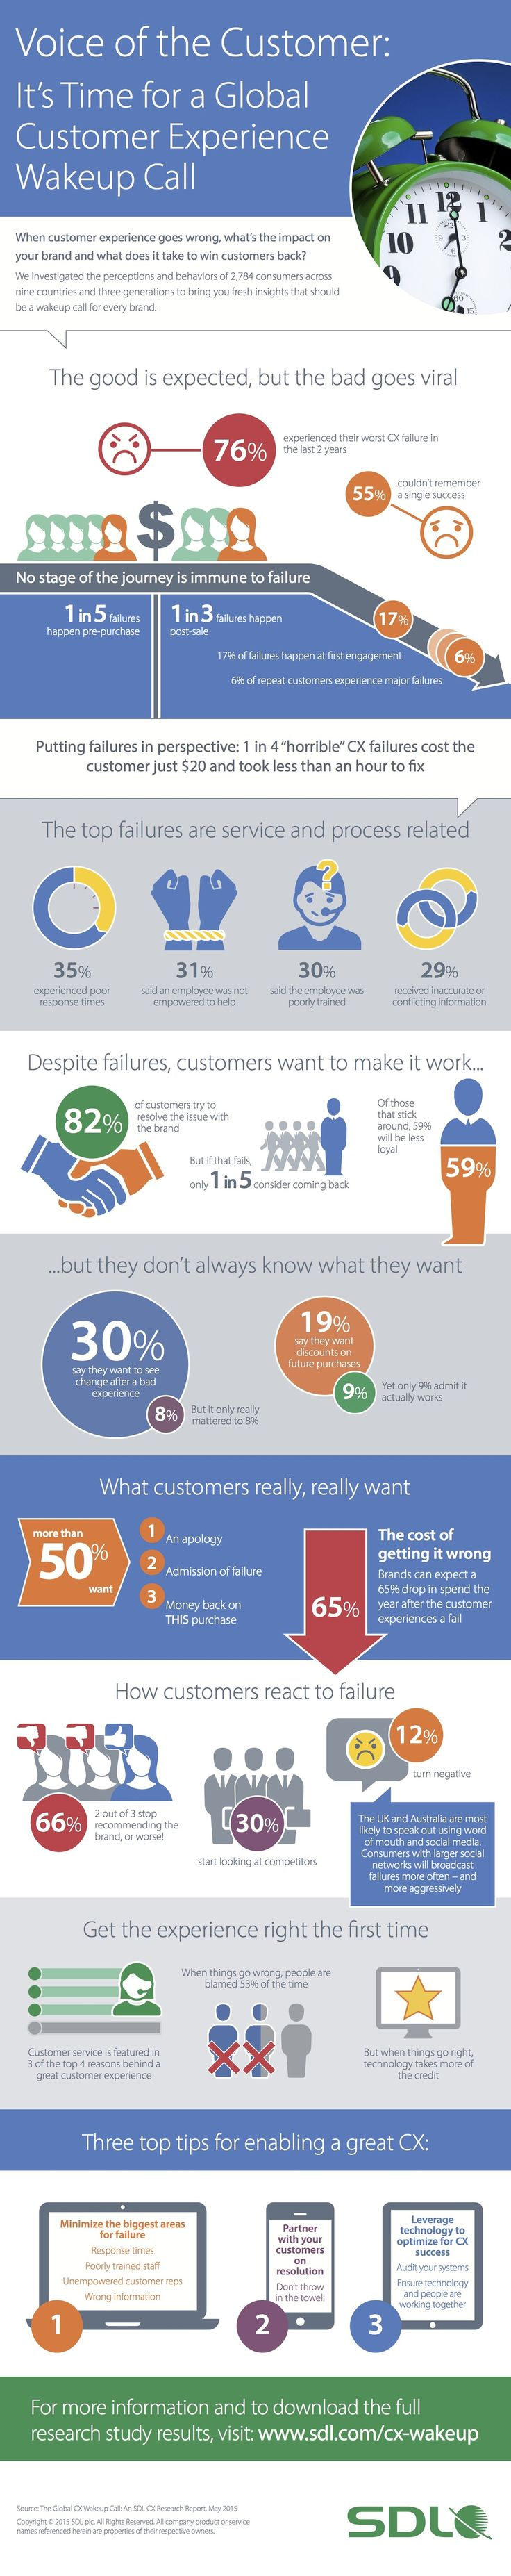 Vital to have a relationship post-transaction----- 55% of customers can't remember having a great experience